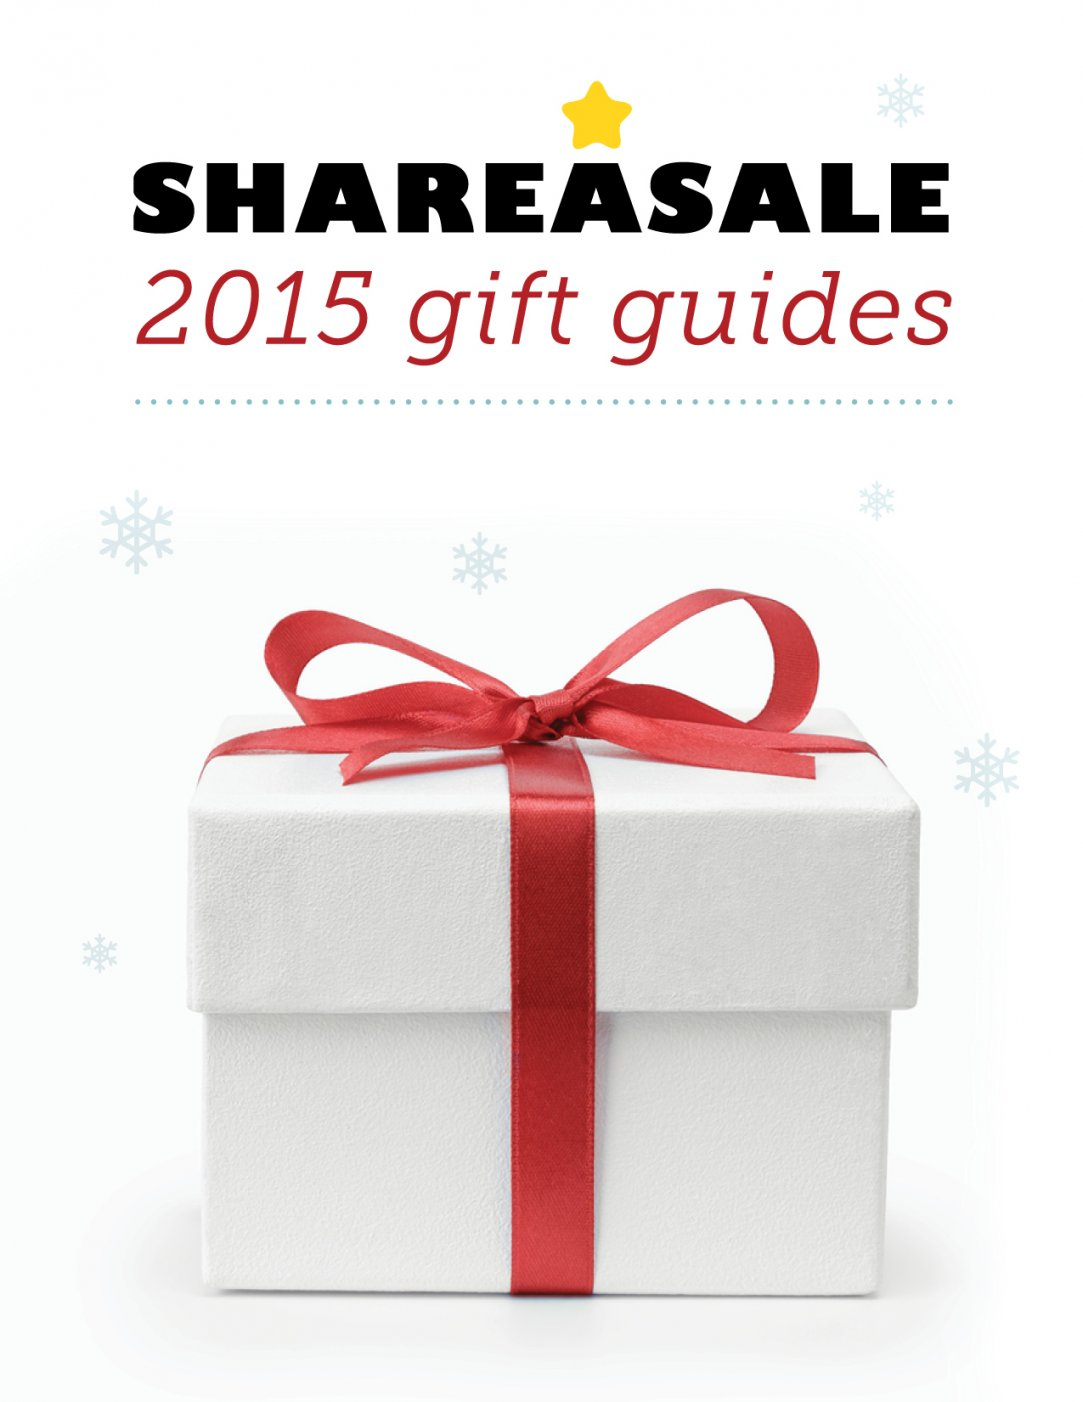 ShareASale's 2015 Gift Guides